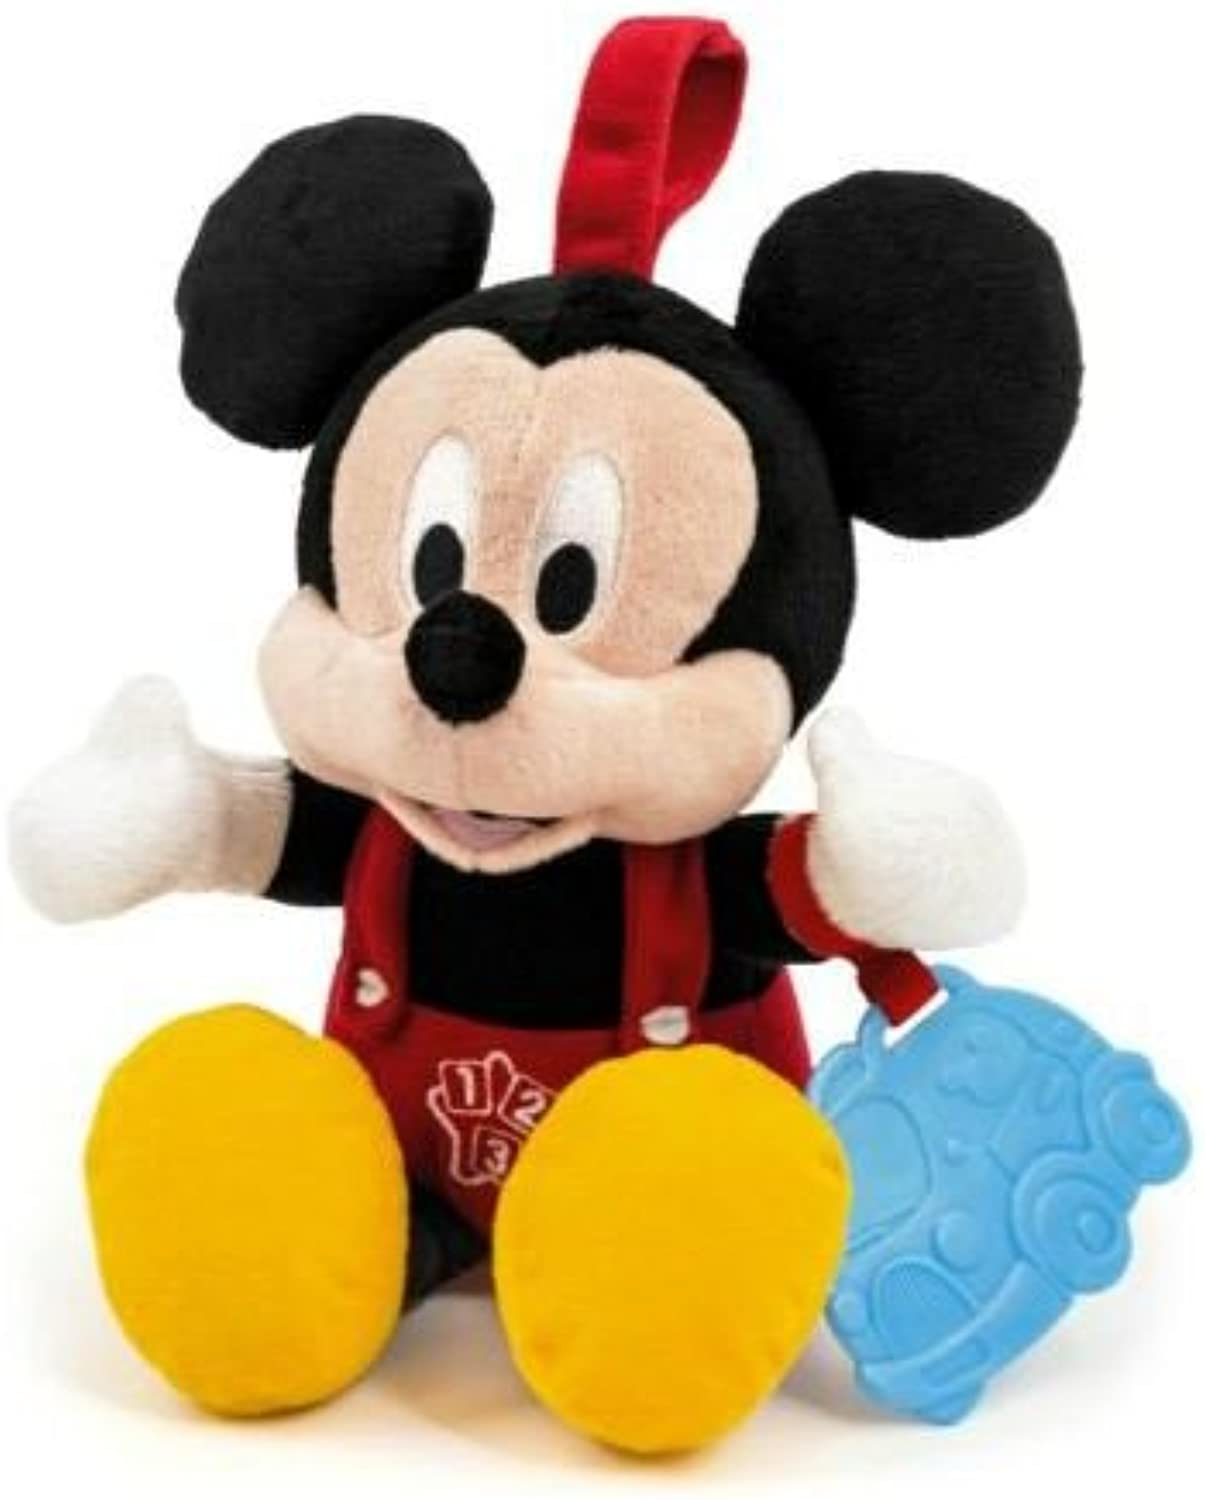 Baby Small Talking Mickey Soft Plush Toy.